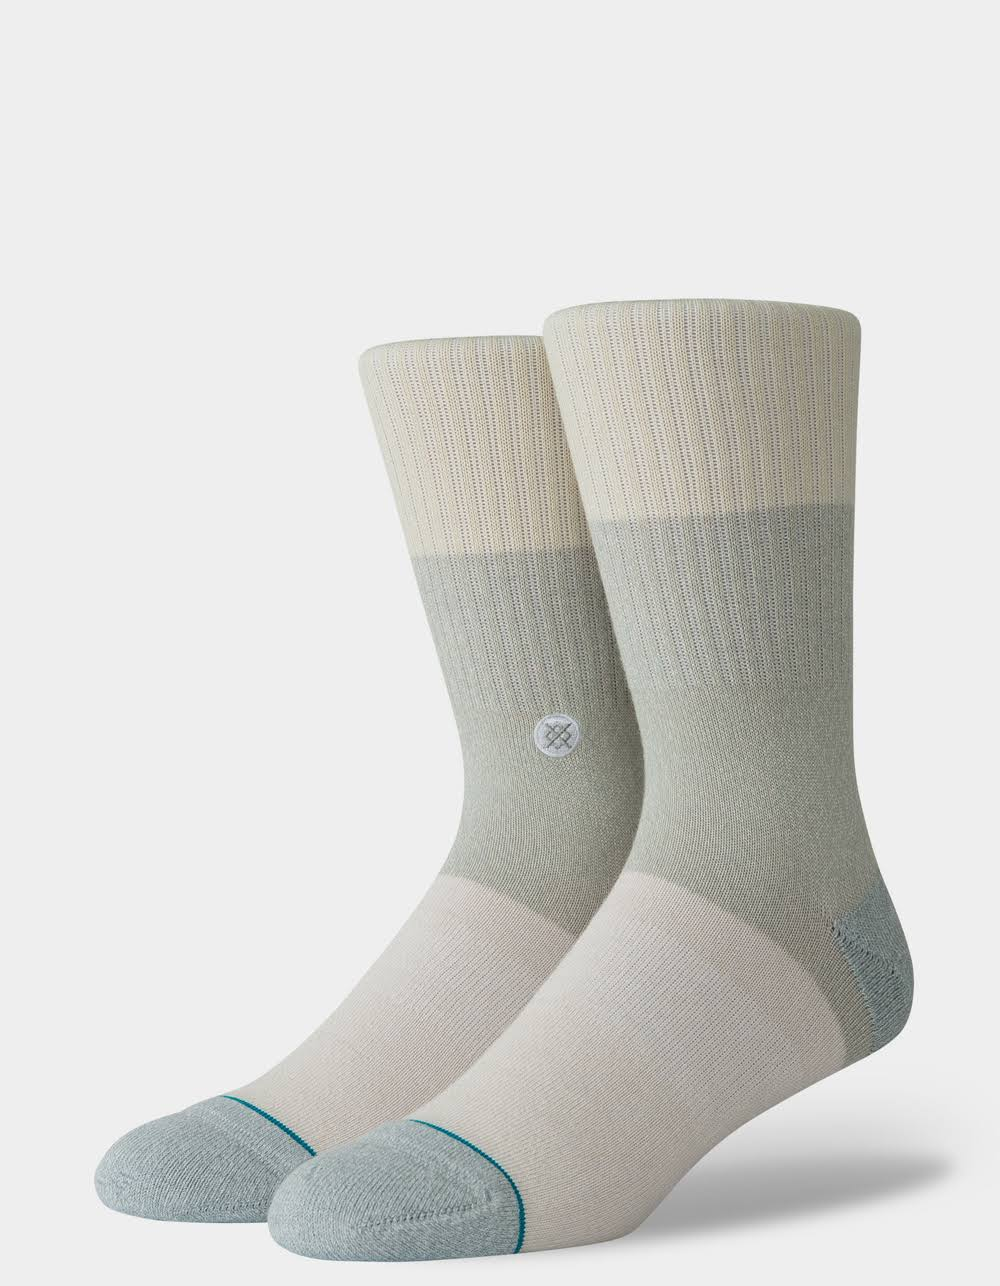 Stance Foundation Mens Socks - Neopolitan Mint, L